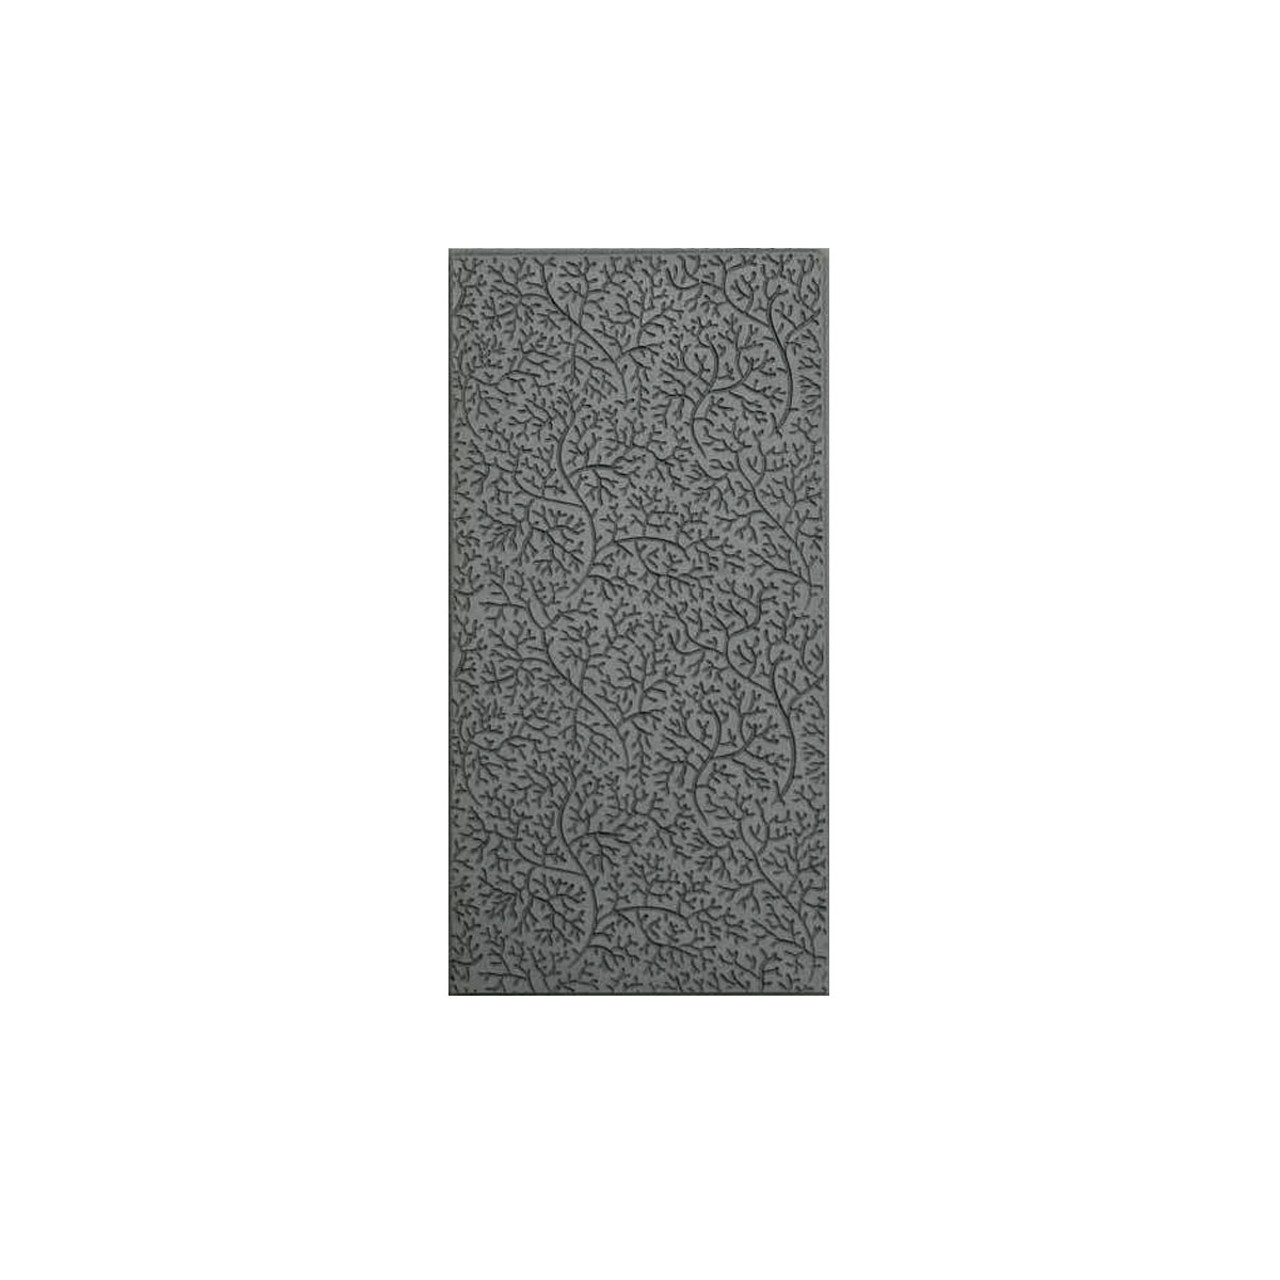 Texture Tile - Branching Out Fine Line